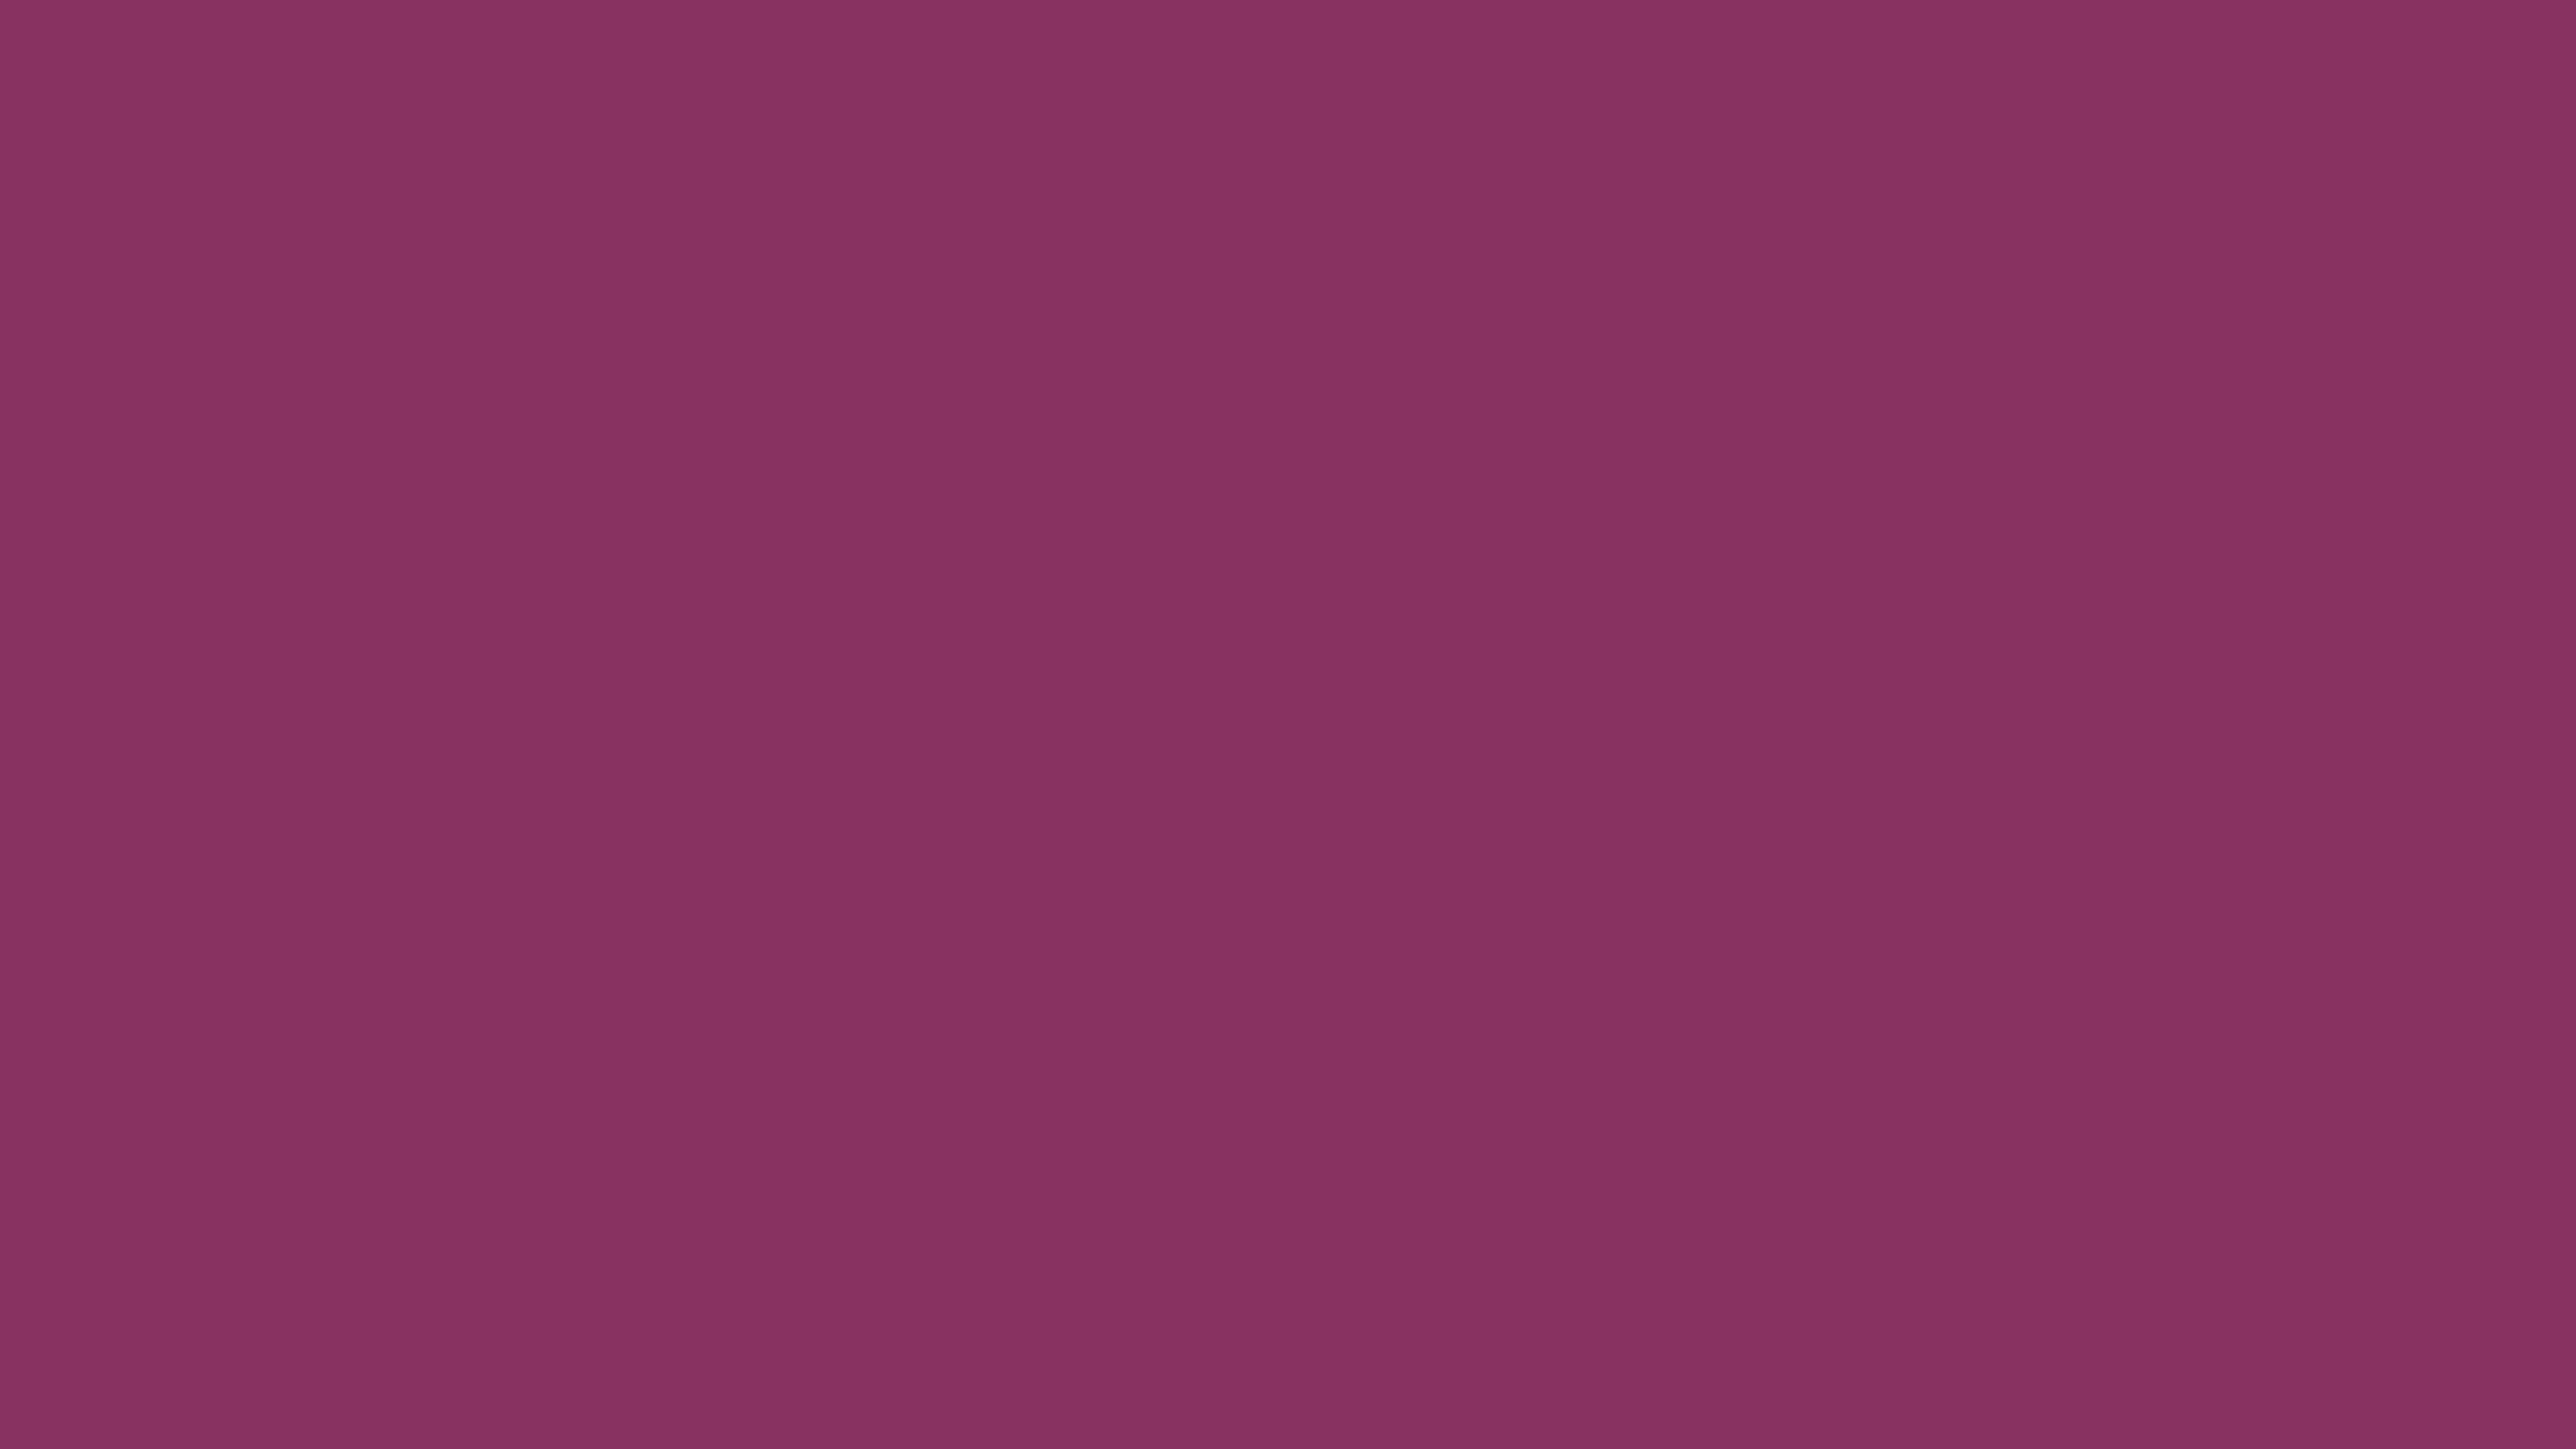 4096x2304 Boysenberry Solid Color Background